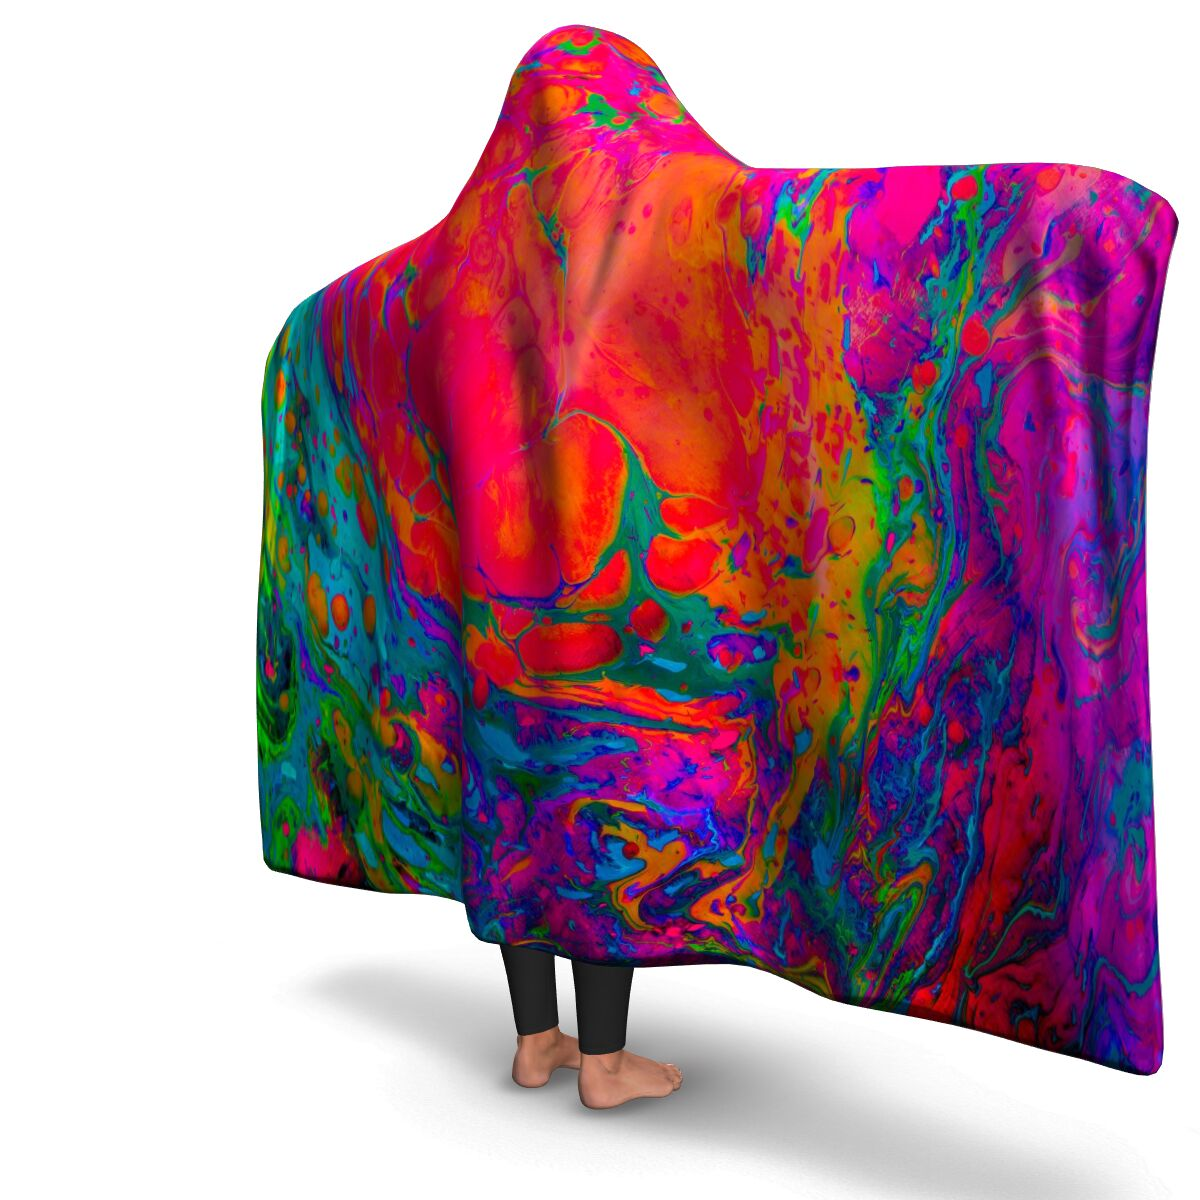 Blue & Organge Acid Paint Hooded Blanket